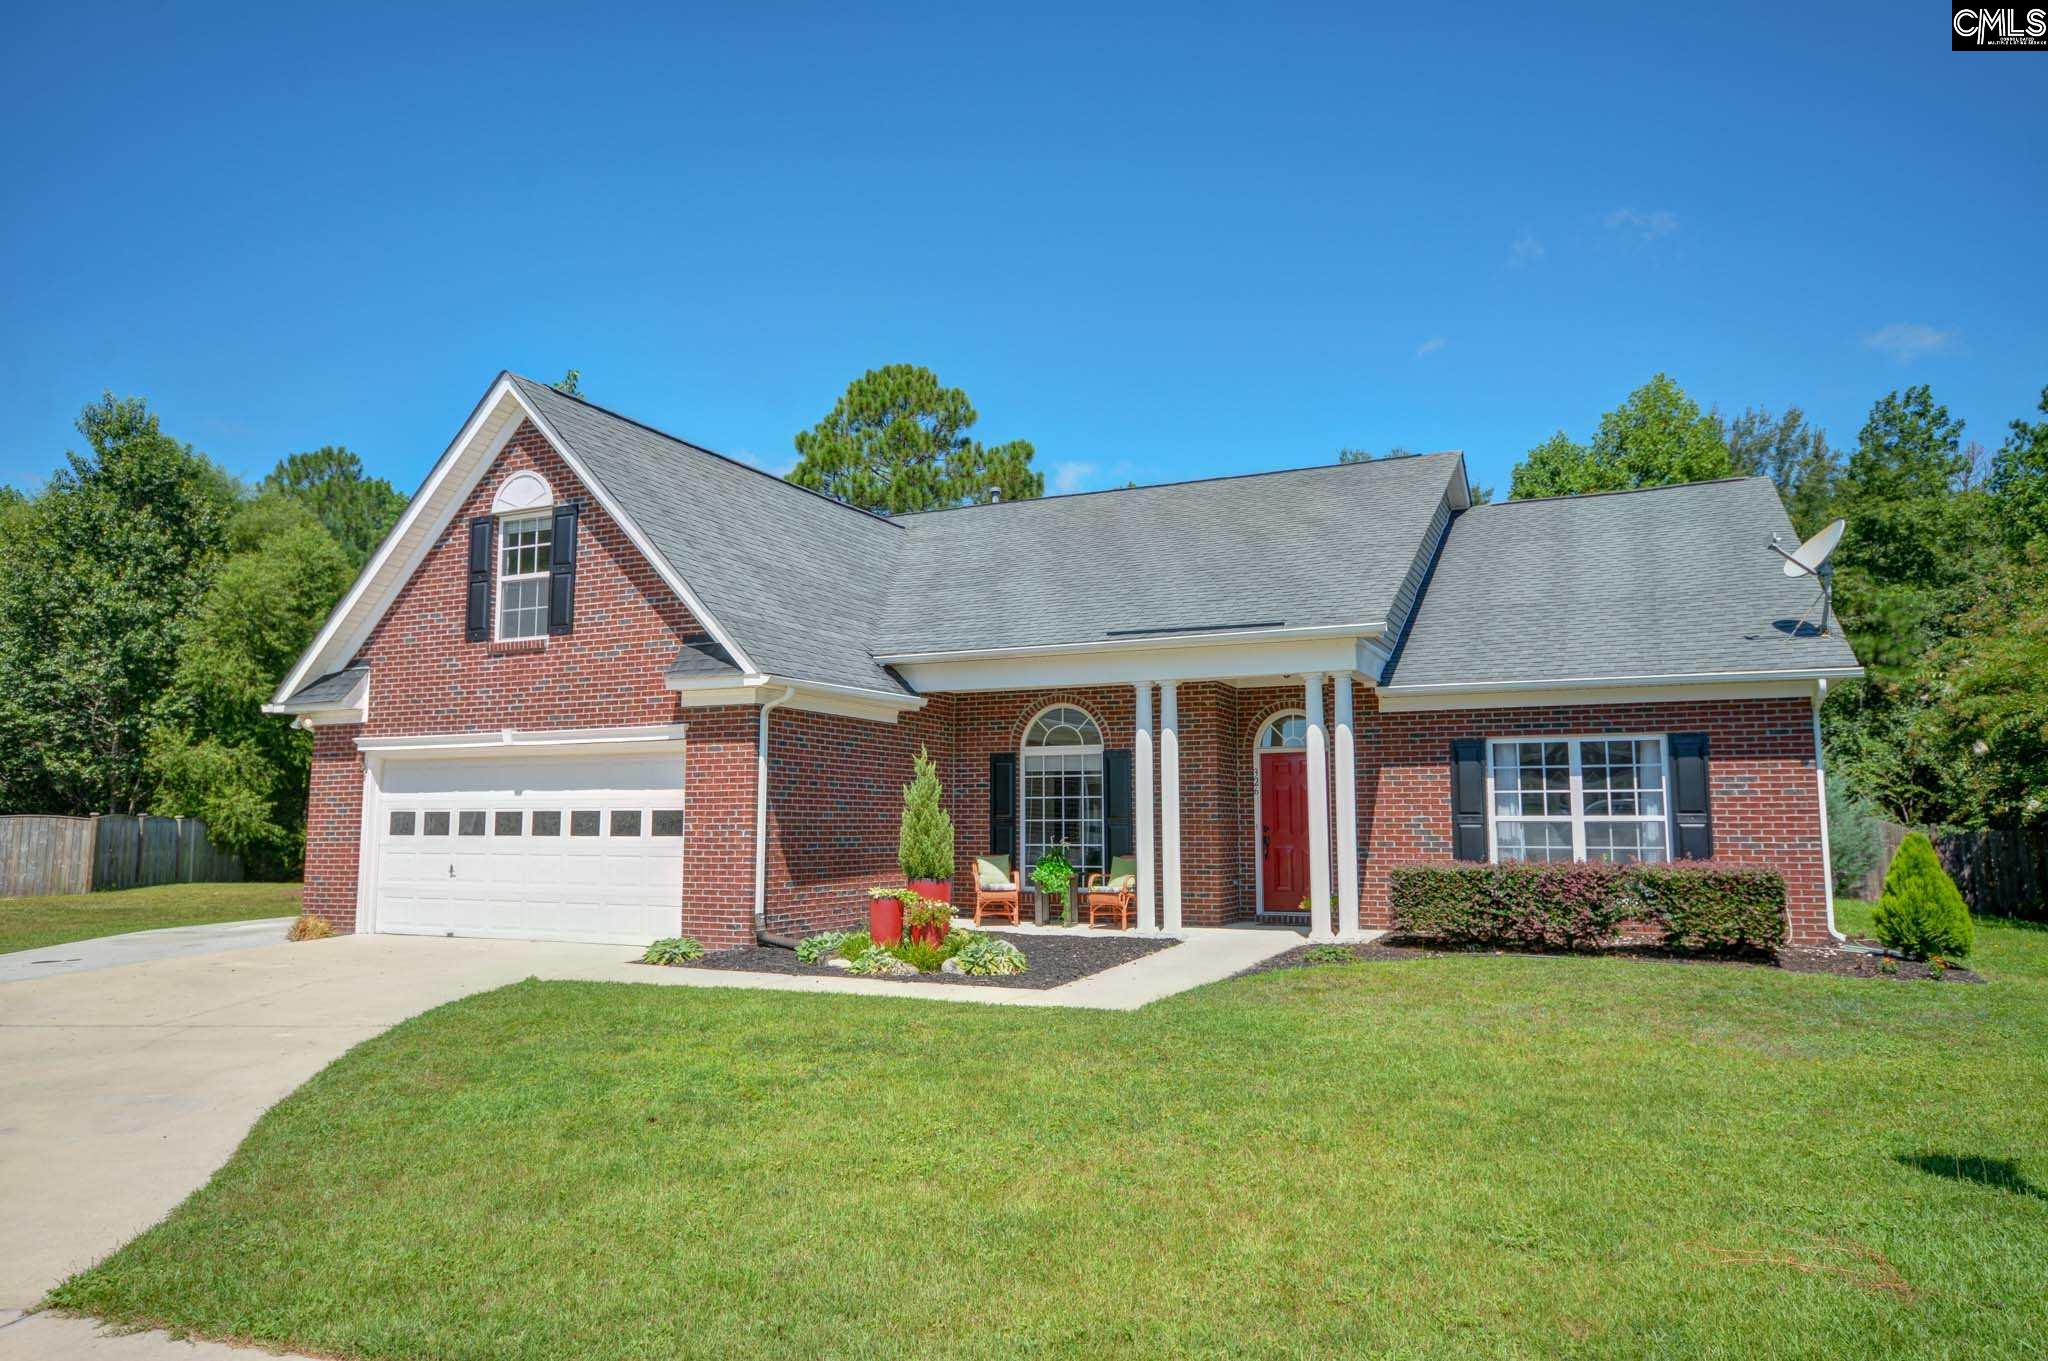 326 Traditions Columbia, SC 29229-7424